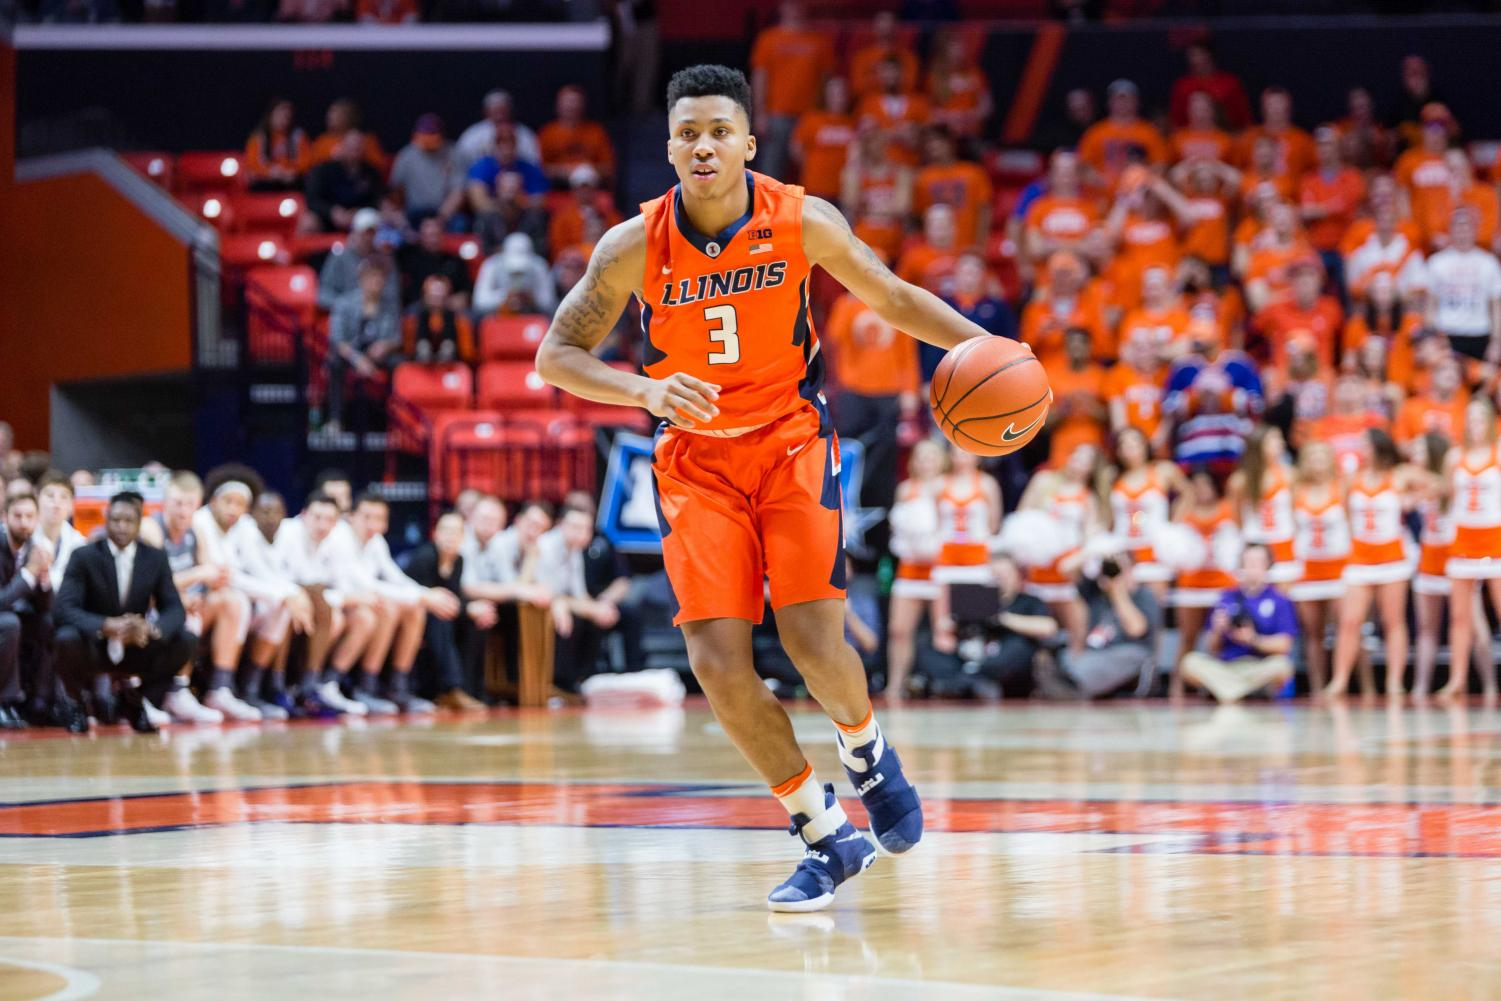 Illinois' Te'Jon Lucas (3) brings the ball up the court during the game against Northwestern at State Farm Center on Tuesday, February 21.